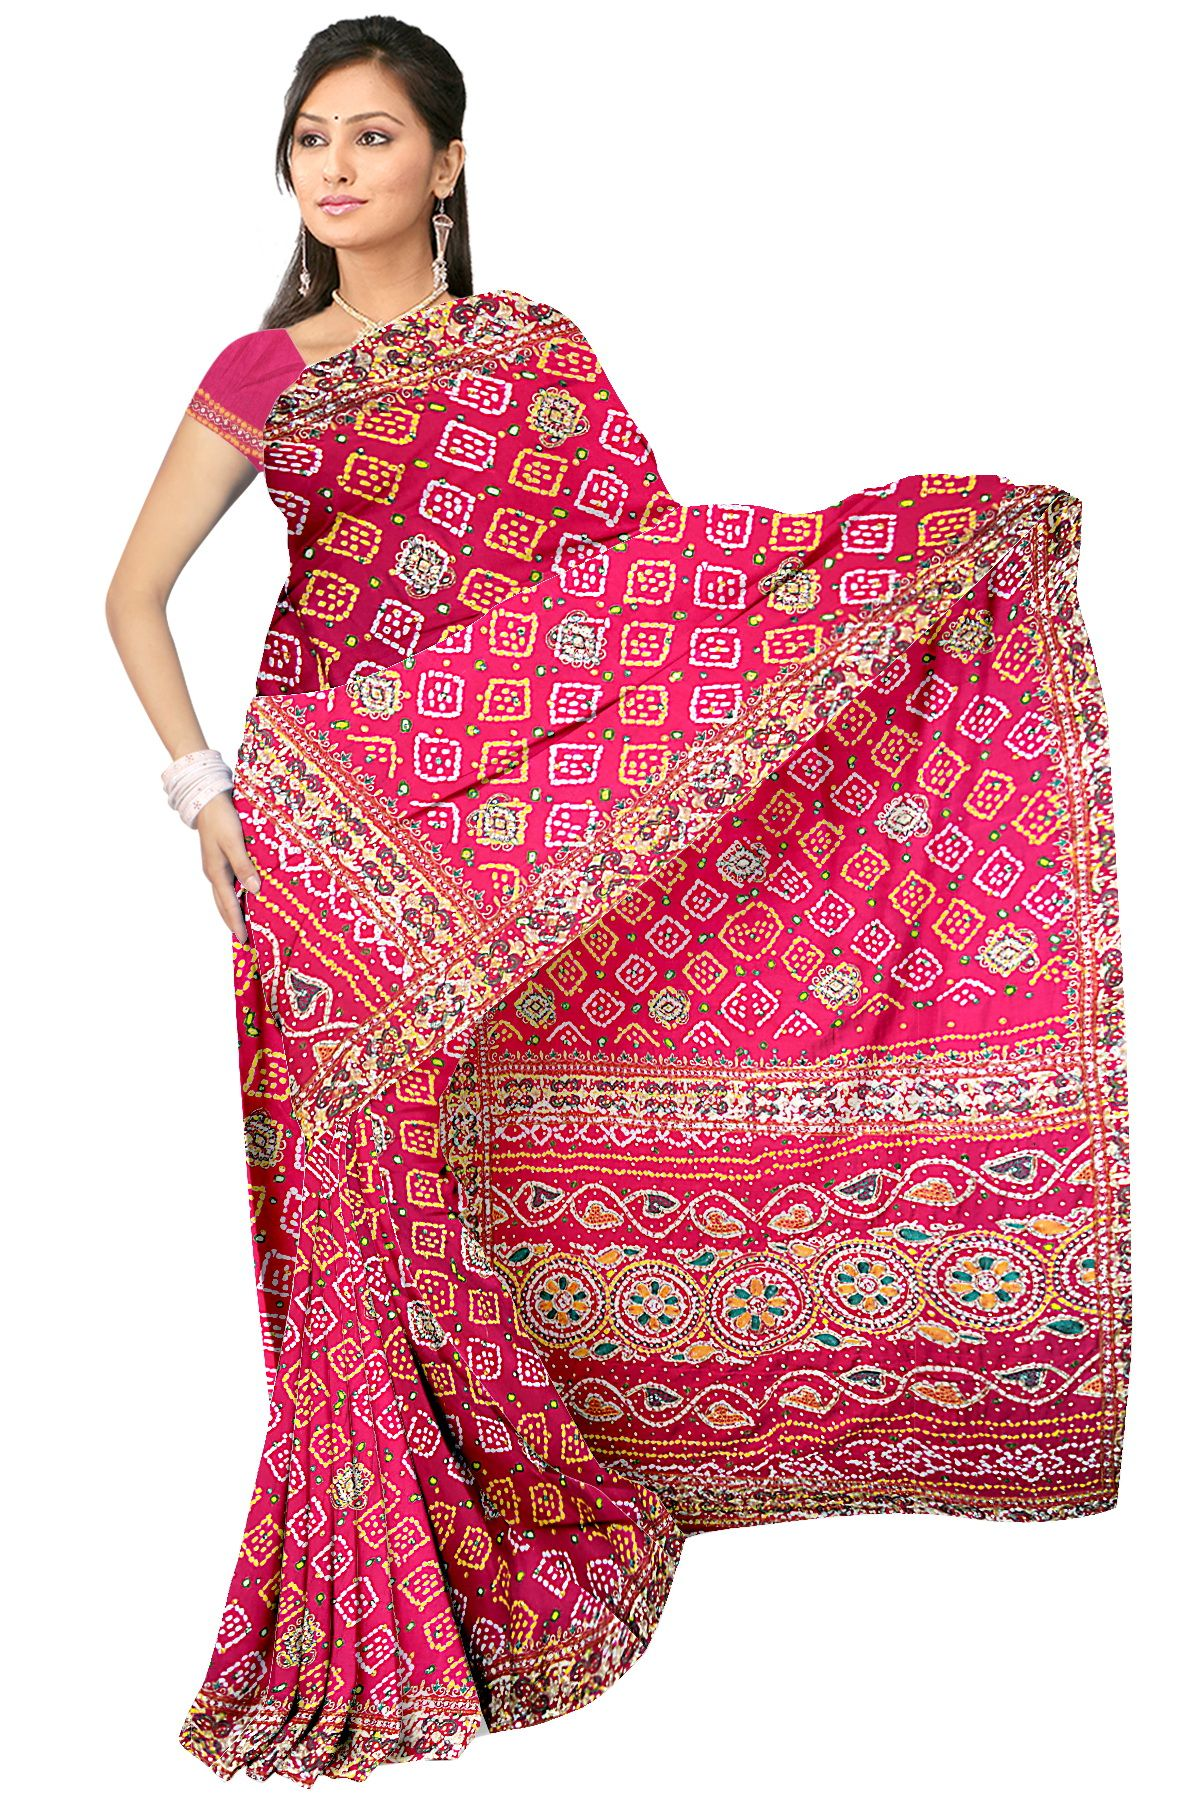 2f474892b7b21 Kala Sanskruti Pure Gaji Silk Red And Multi Colore Work Bandhani Saree  Material